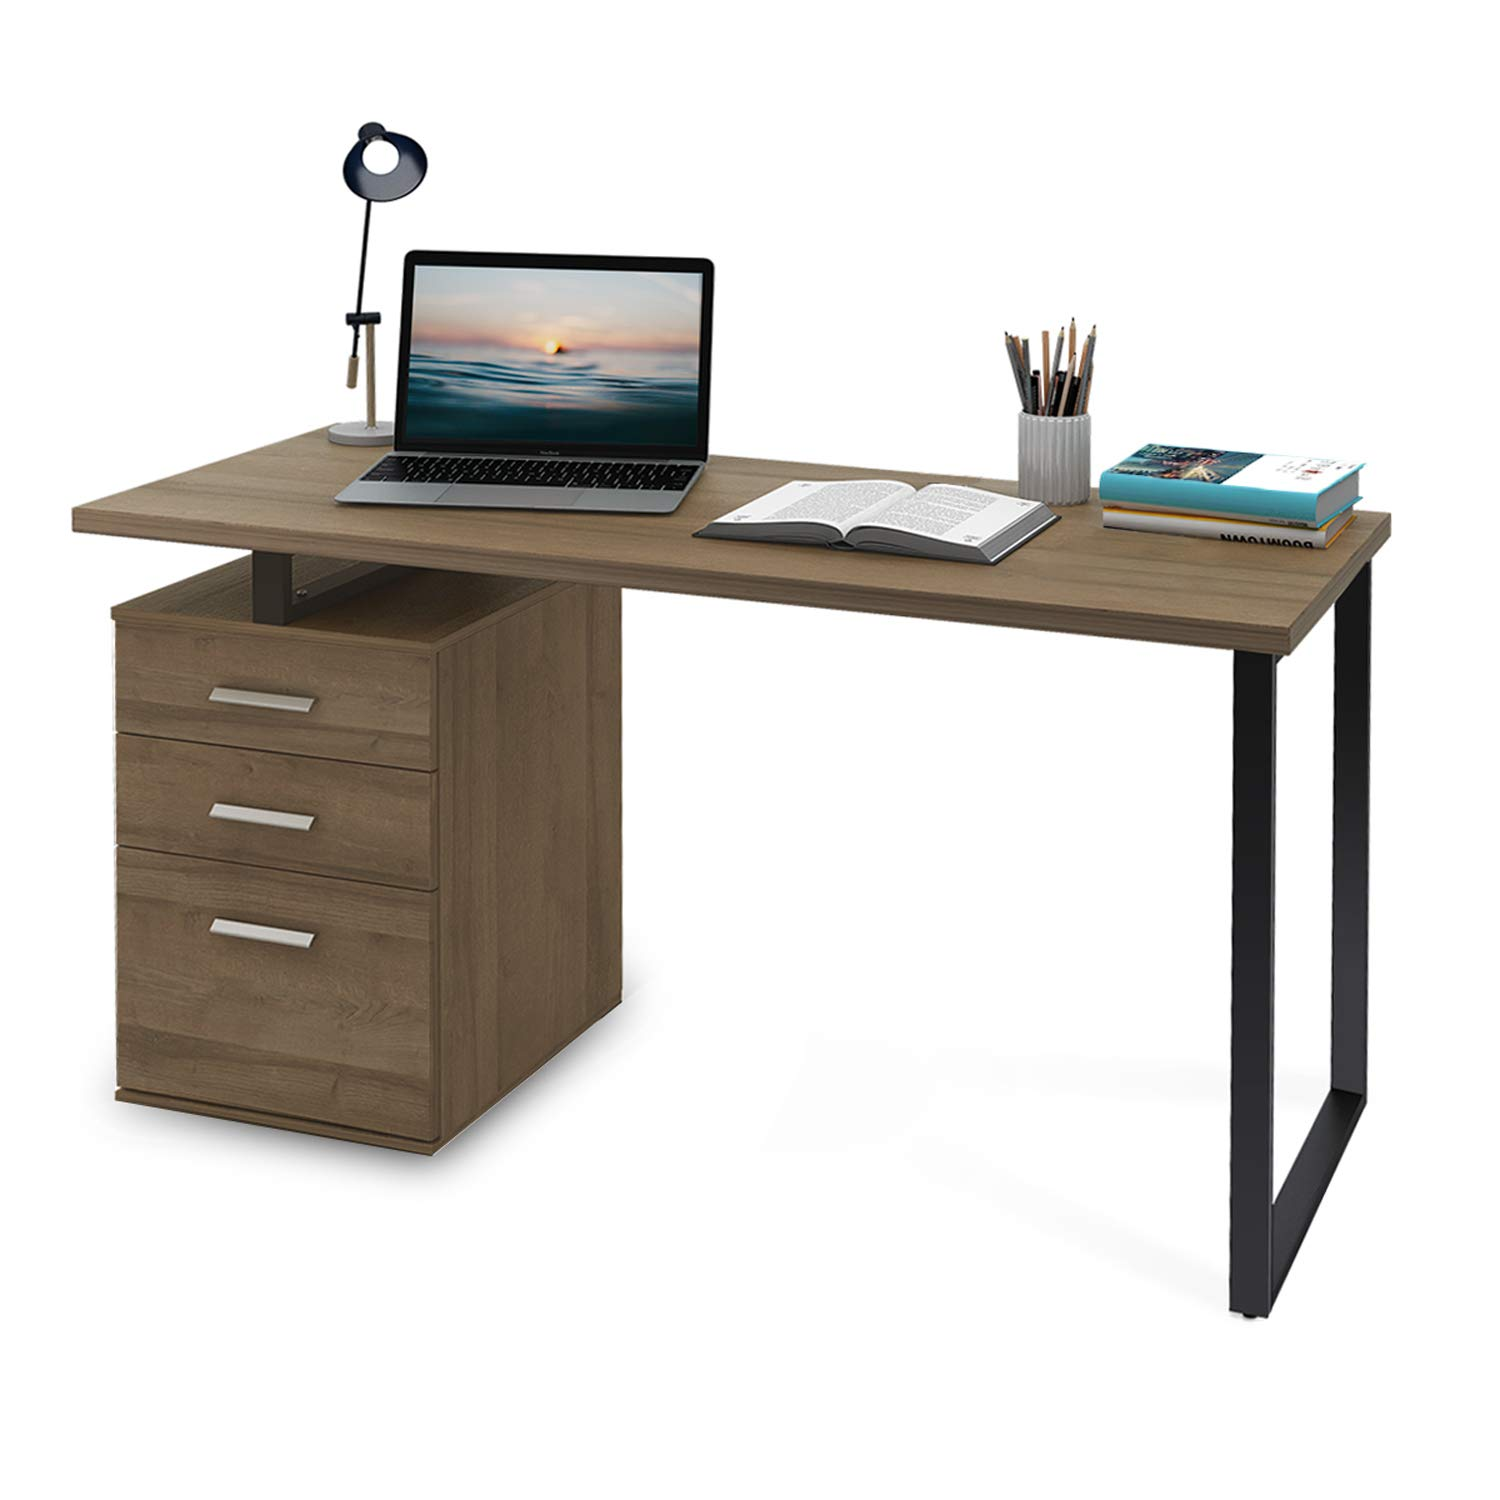 DEVAISE Modern Computer Desk, 55.1'' Office Desk with Reversible File Cabinet by DEVAISE